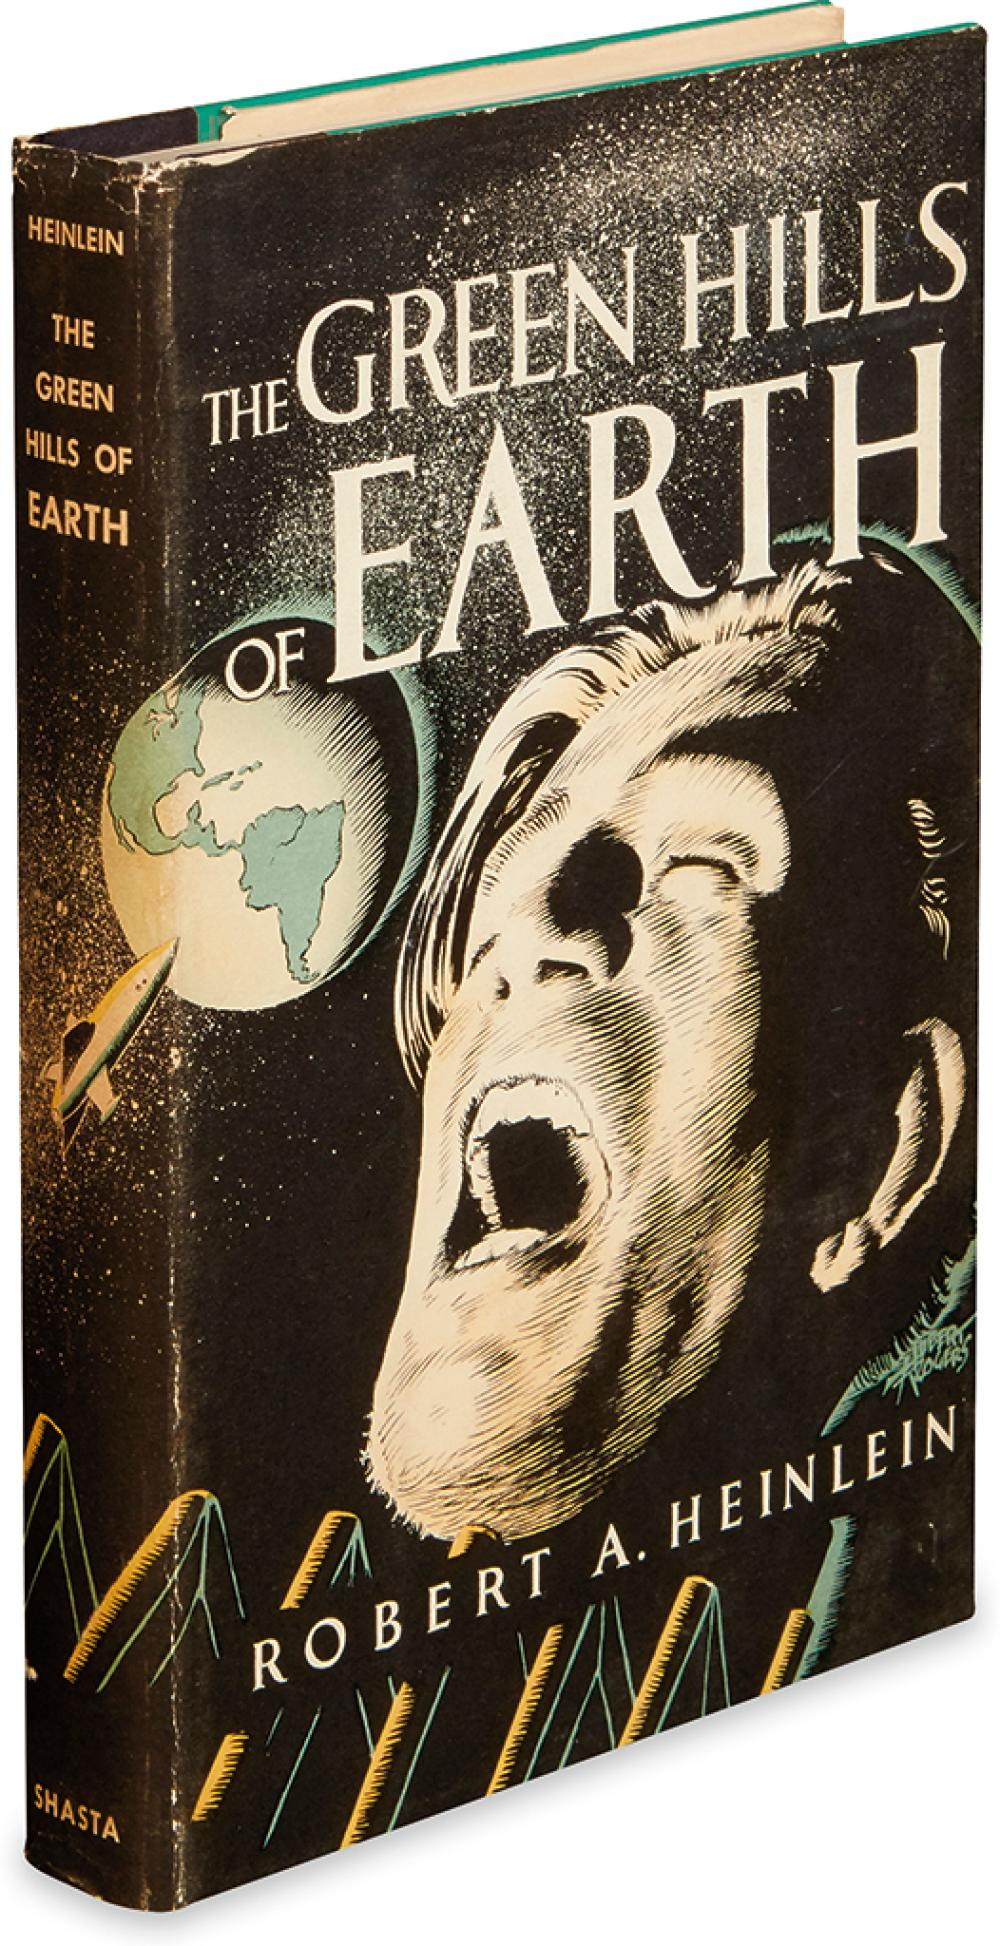 HEINLEIN, ROBERT A. The Green Hills of Earth.